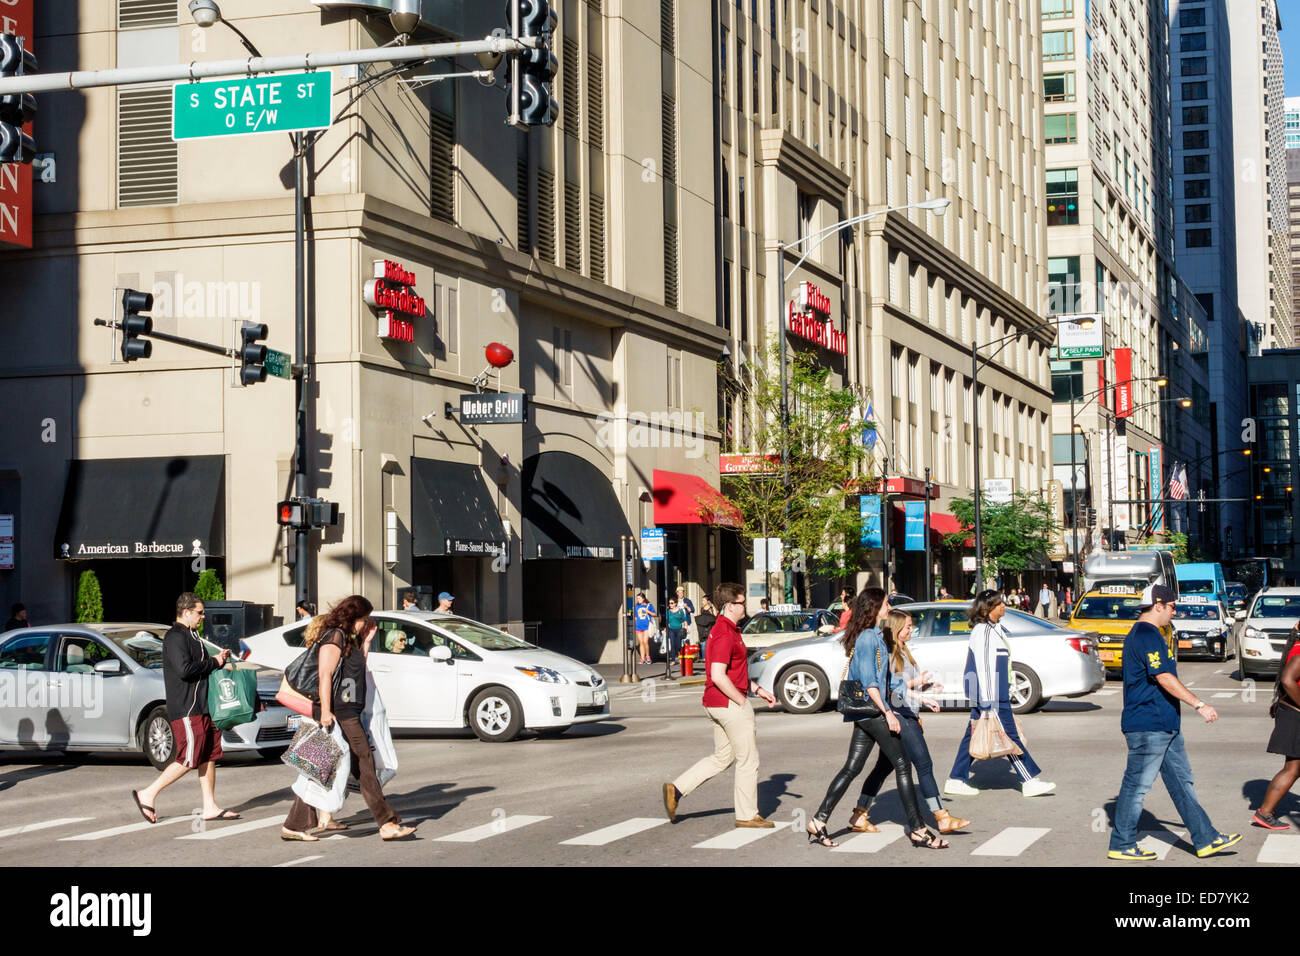 Chicago Illinois River North downtown South State Street East Grand Avenue traffic pedestrians buildings urban Hilton - Stock Image